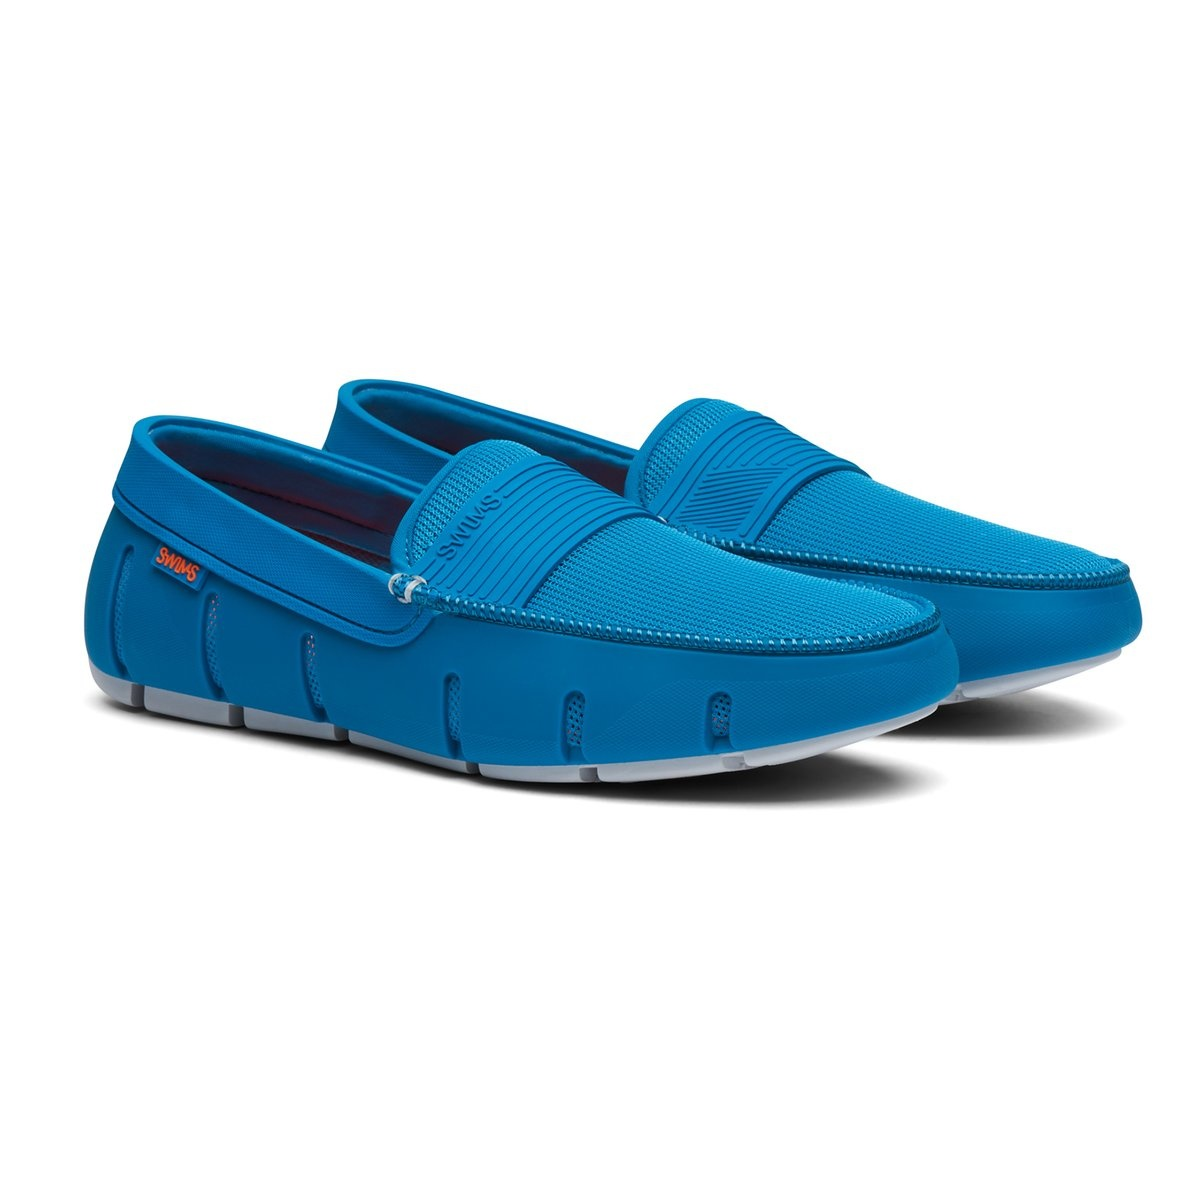 SWIMS Swims - Men's Stride Single Band Keeper Loafer